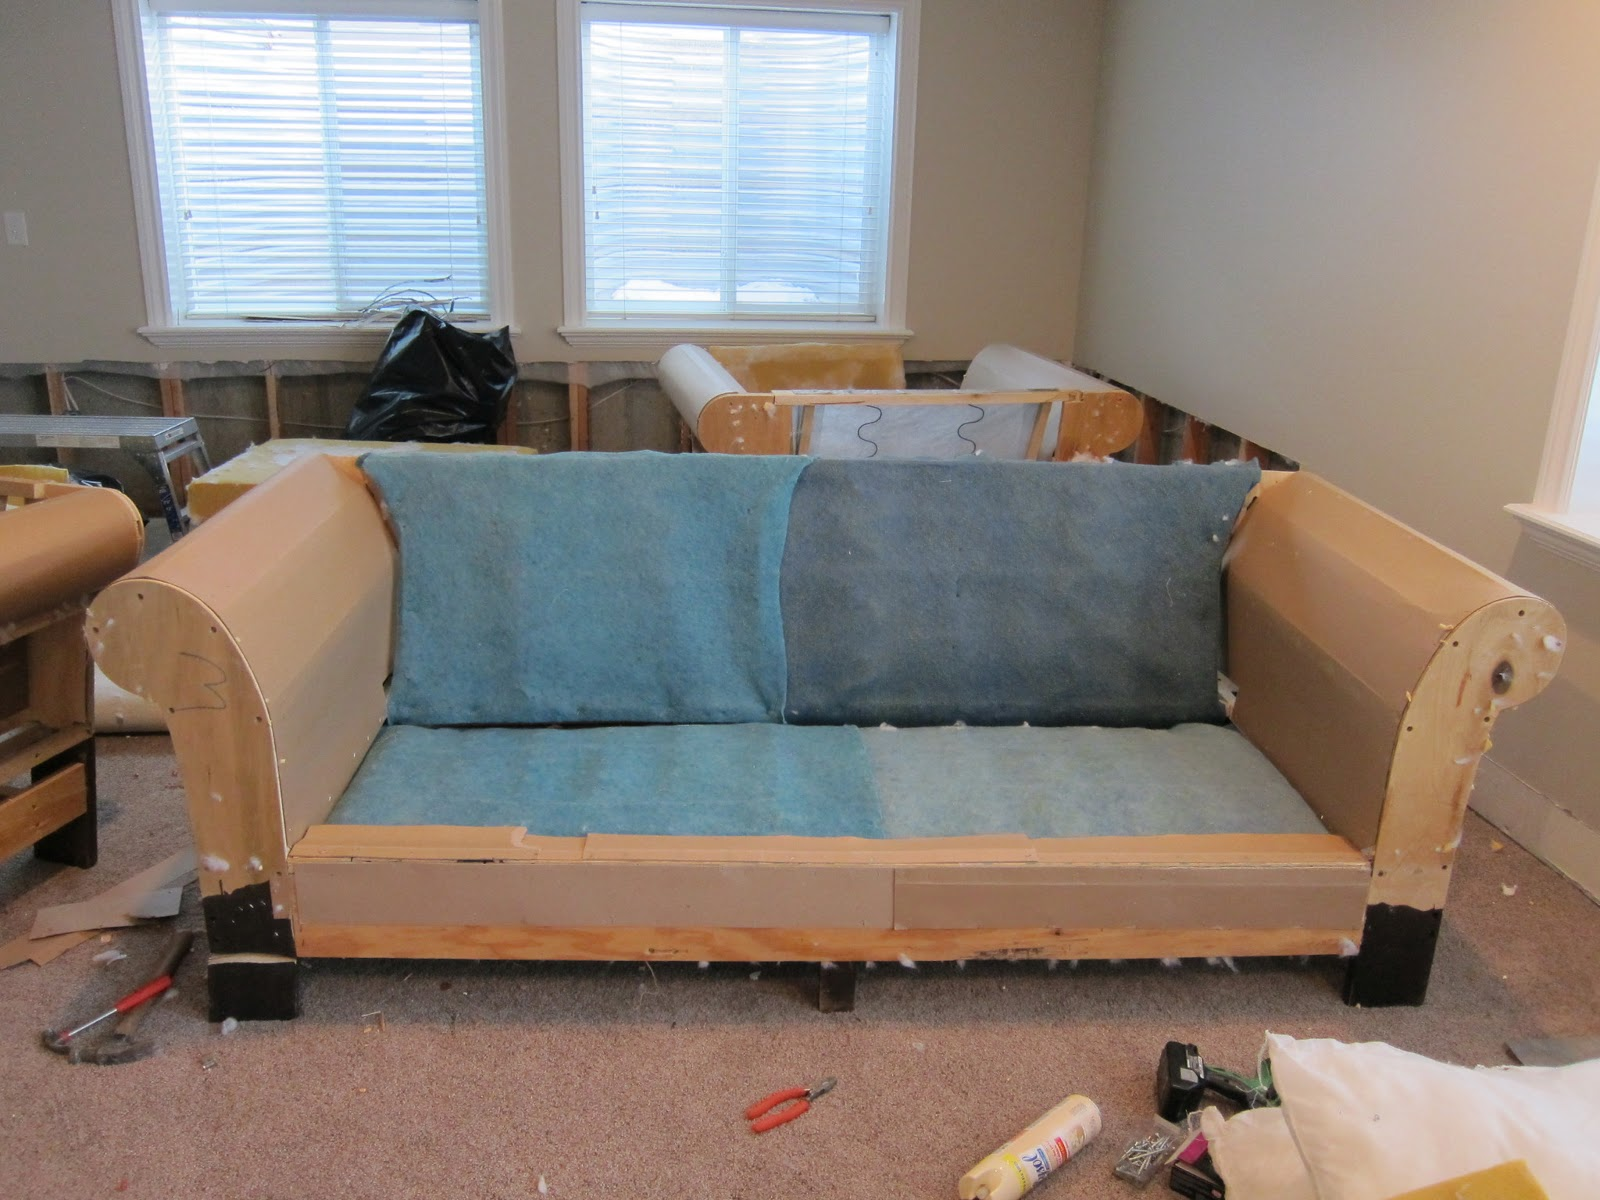 Upholstery Couch Diy Do It Yourself Divas Diy Strip Fabric From A Couch And